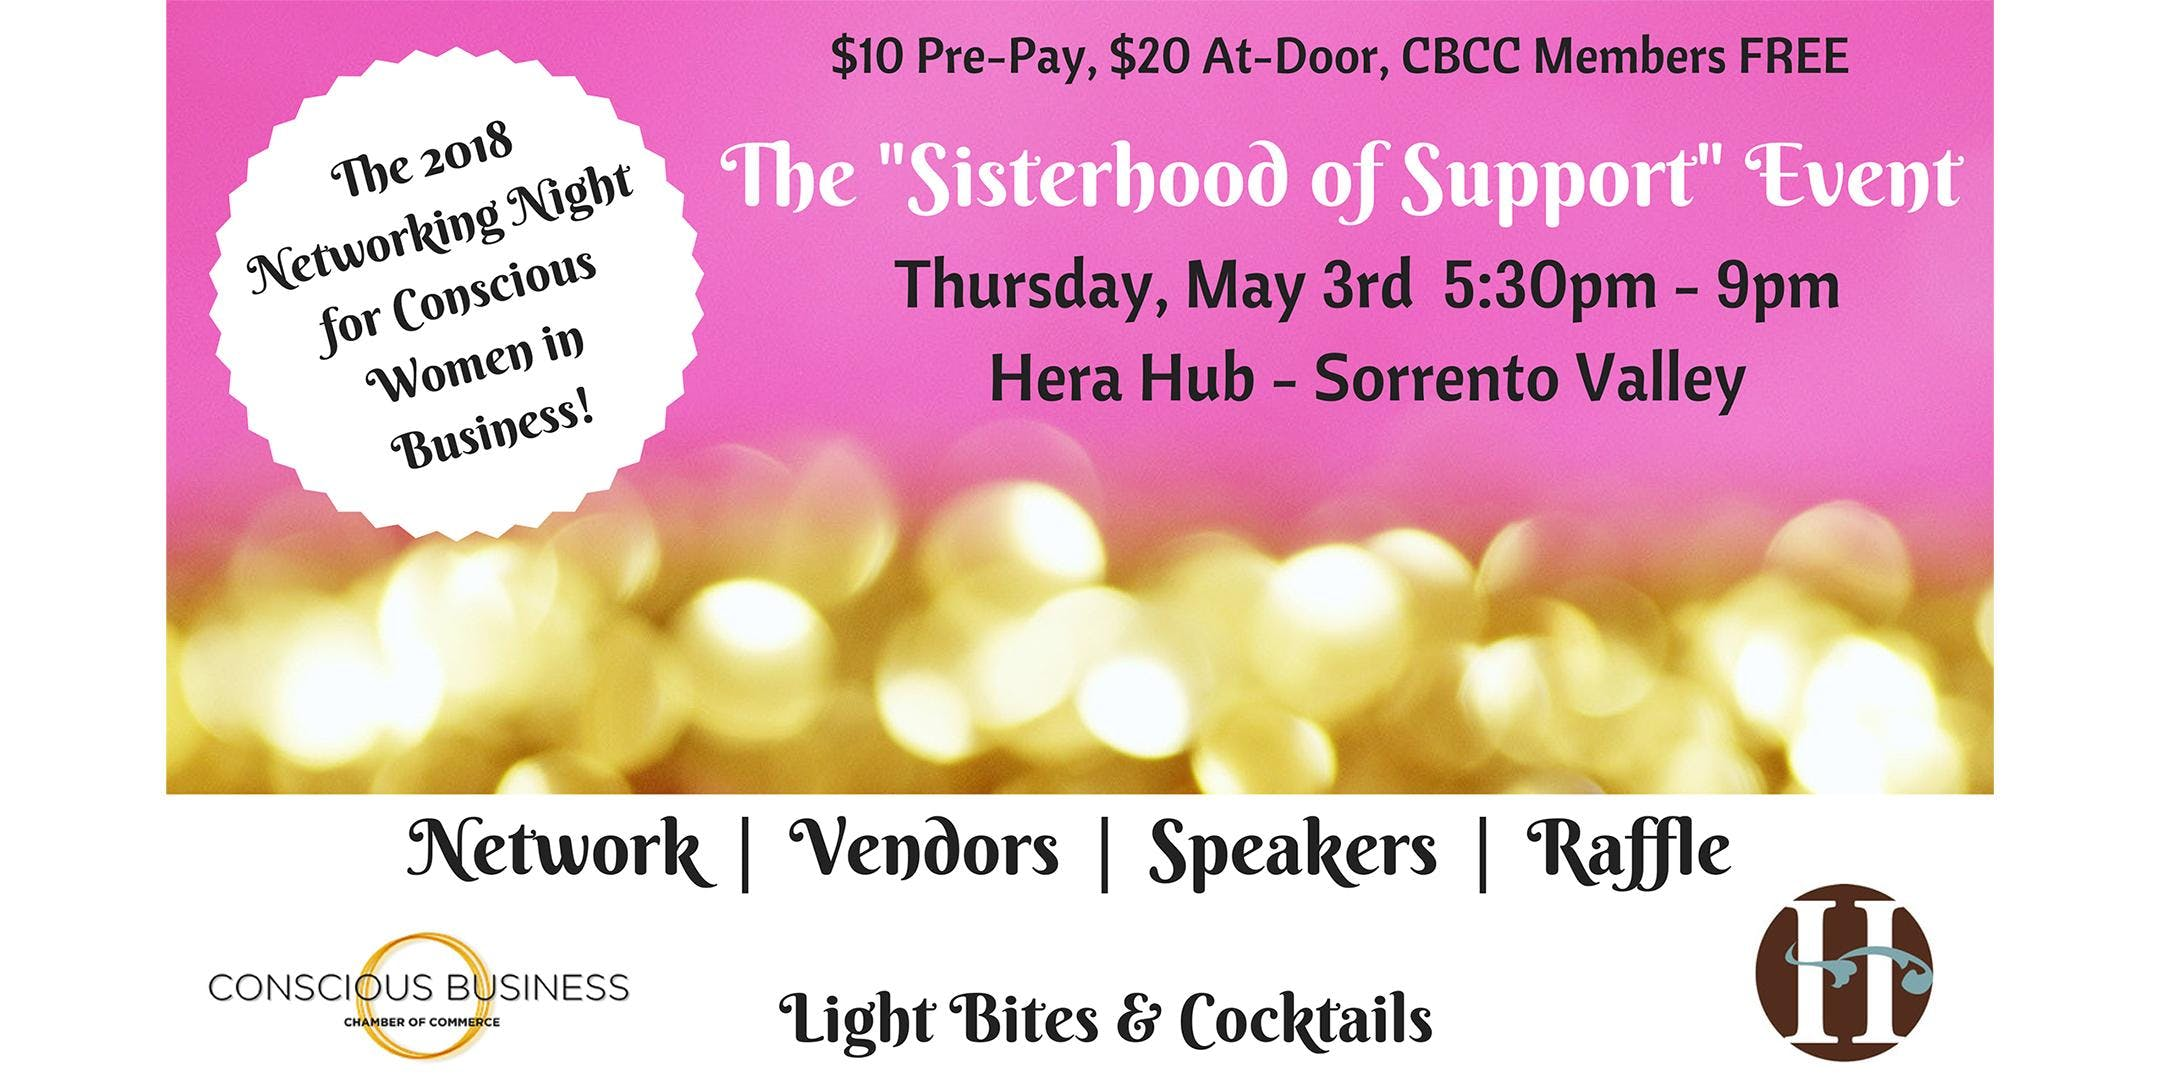 2018 networking night for conscious women in business featuring raffle speakers business expo